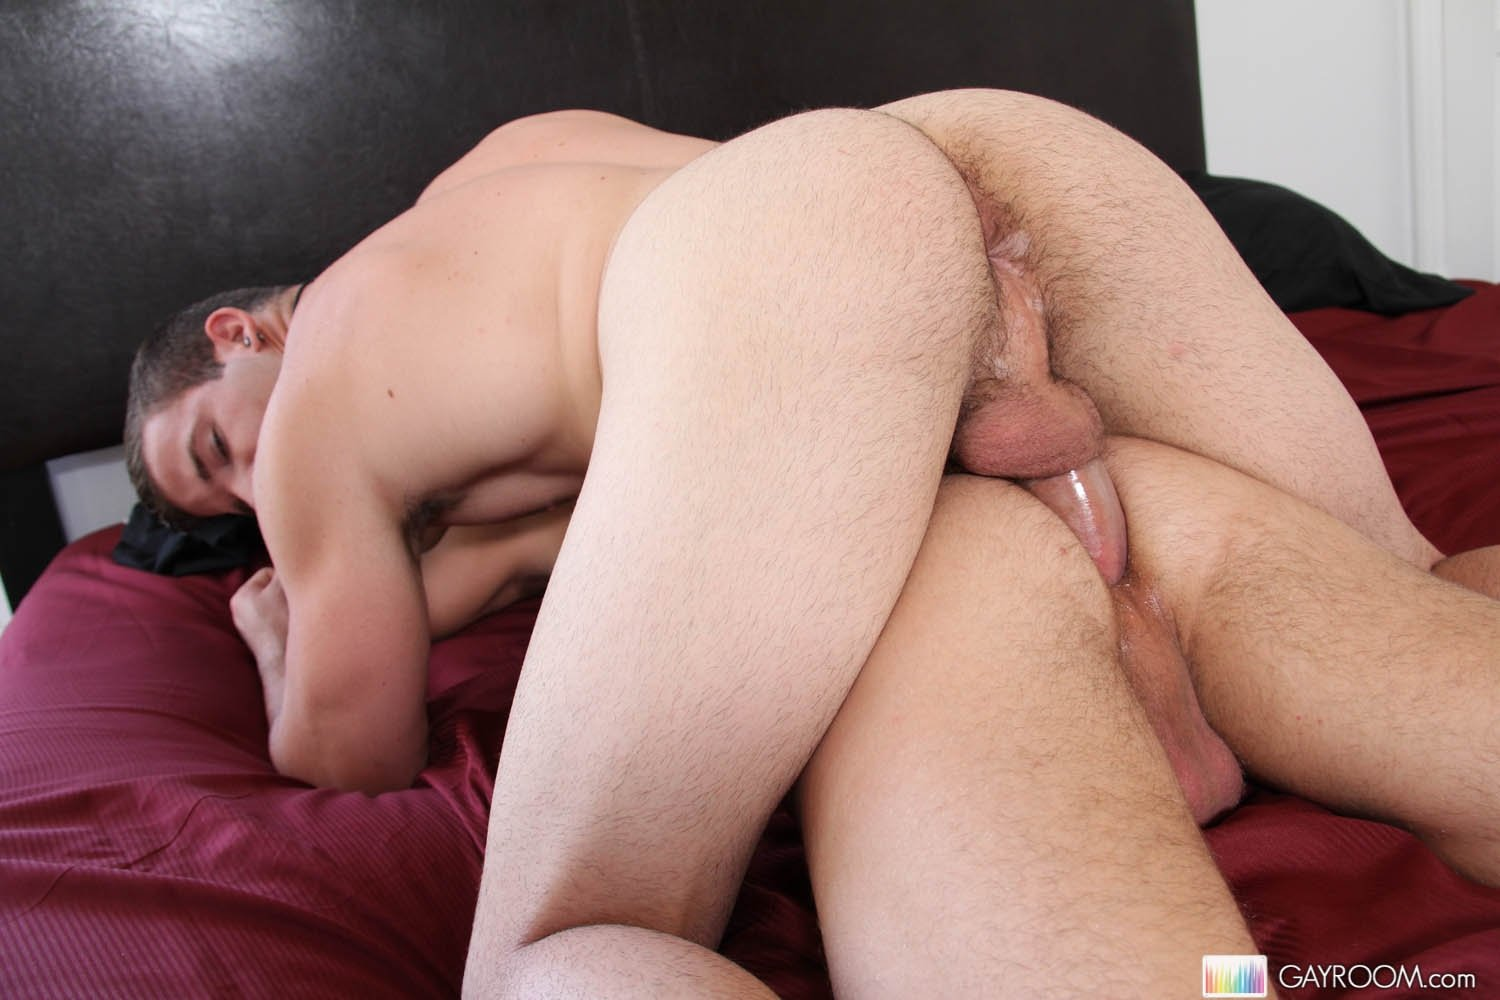 Download Free Amish Boy Gay Sex Stories Turns Out He Had